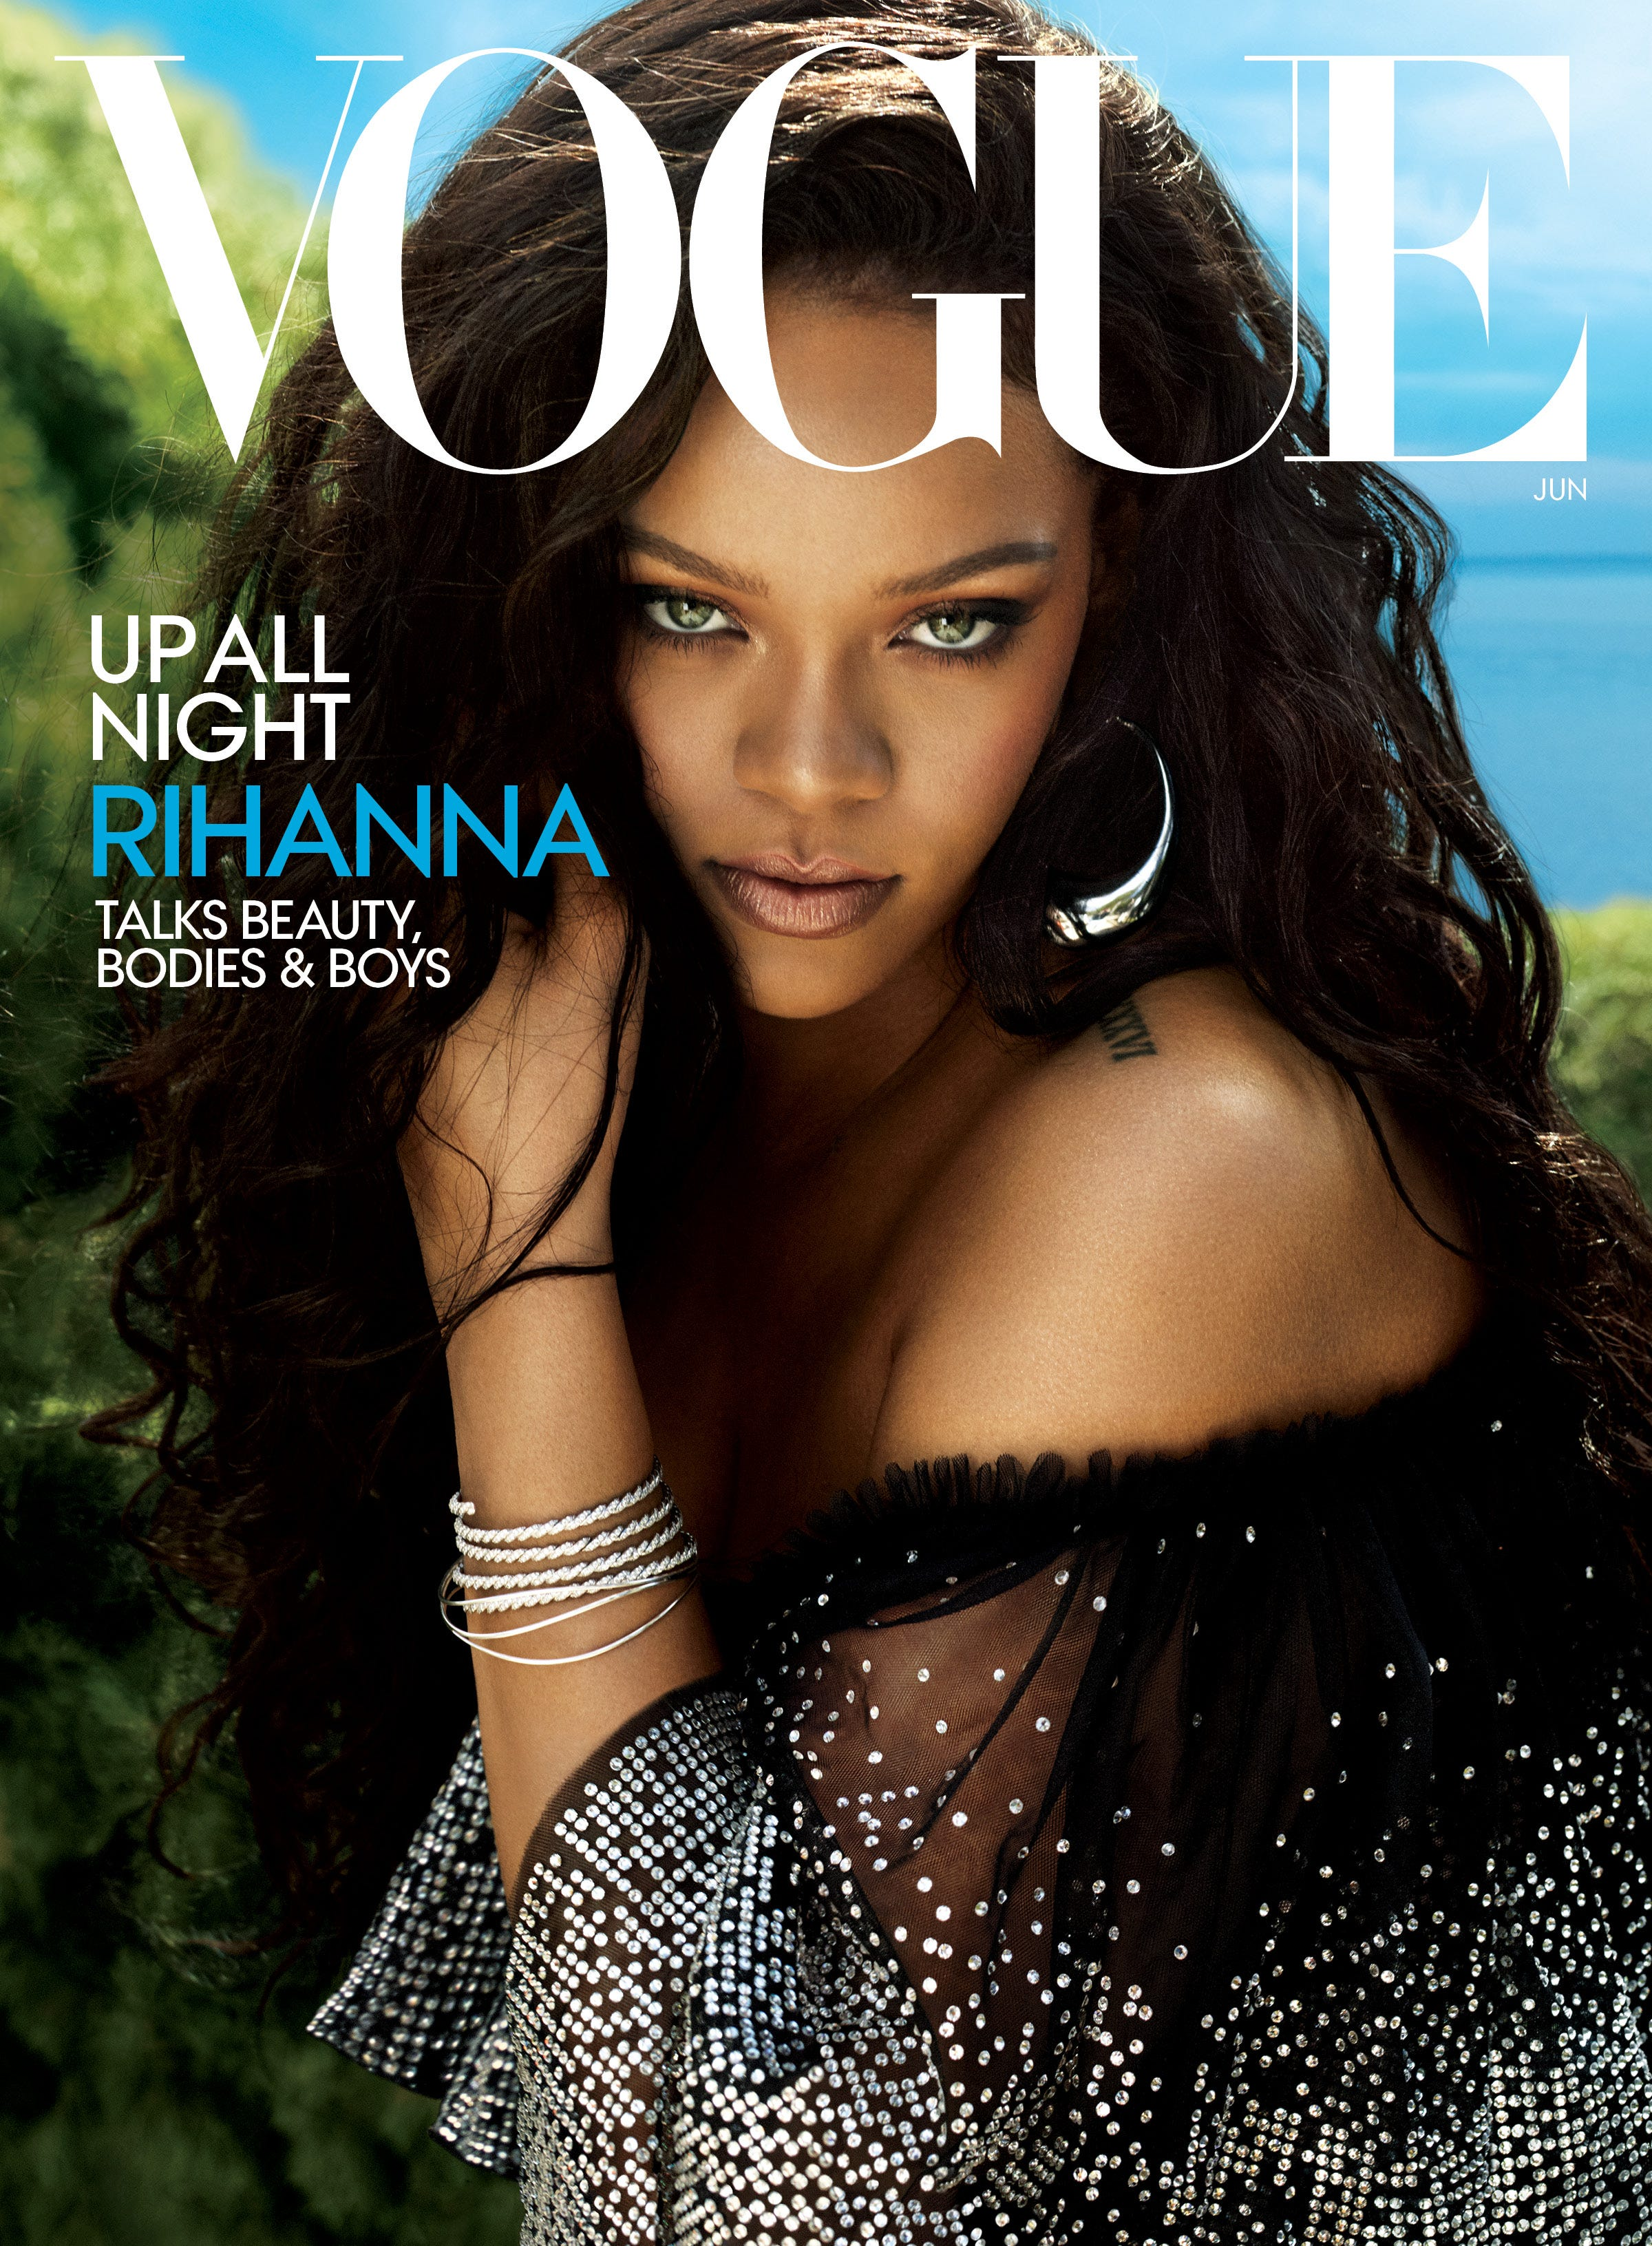 Who is rihanna dating august 2019